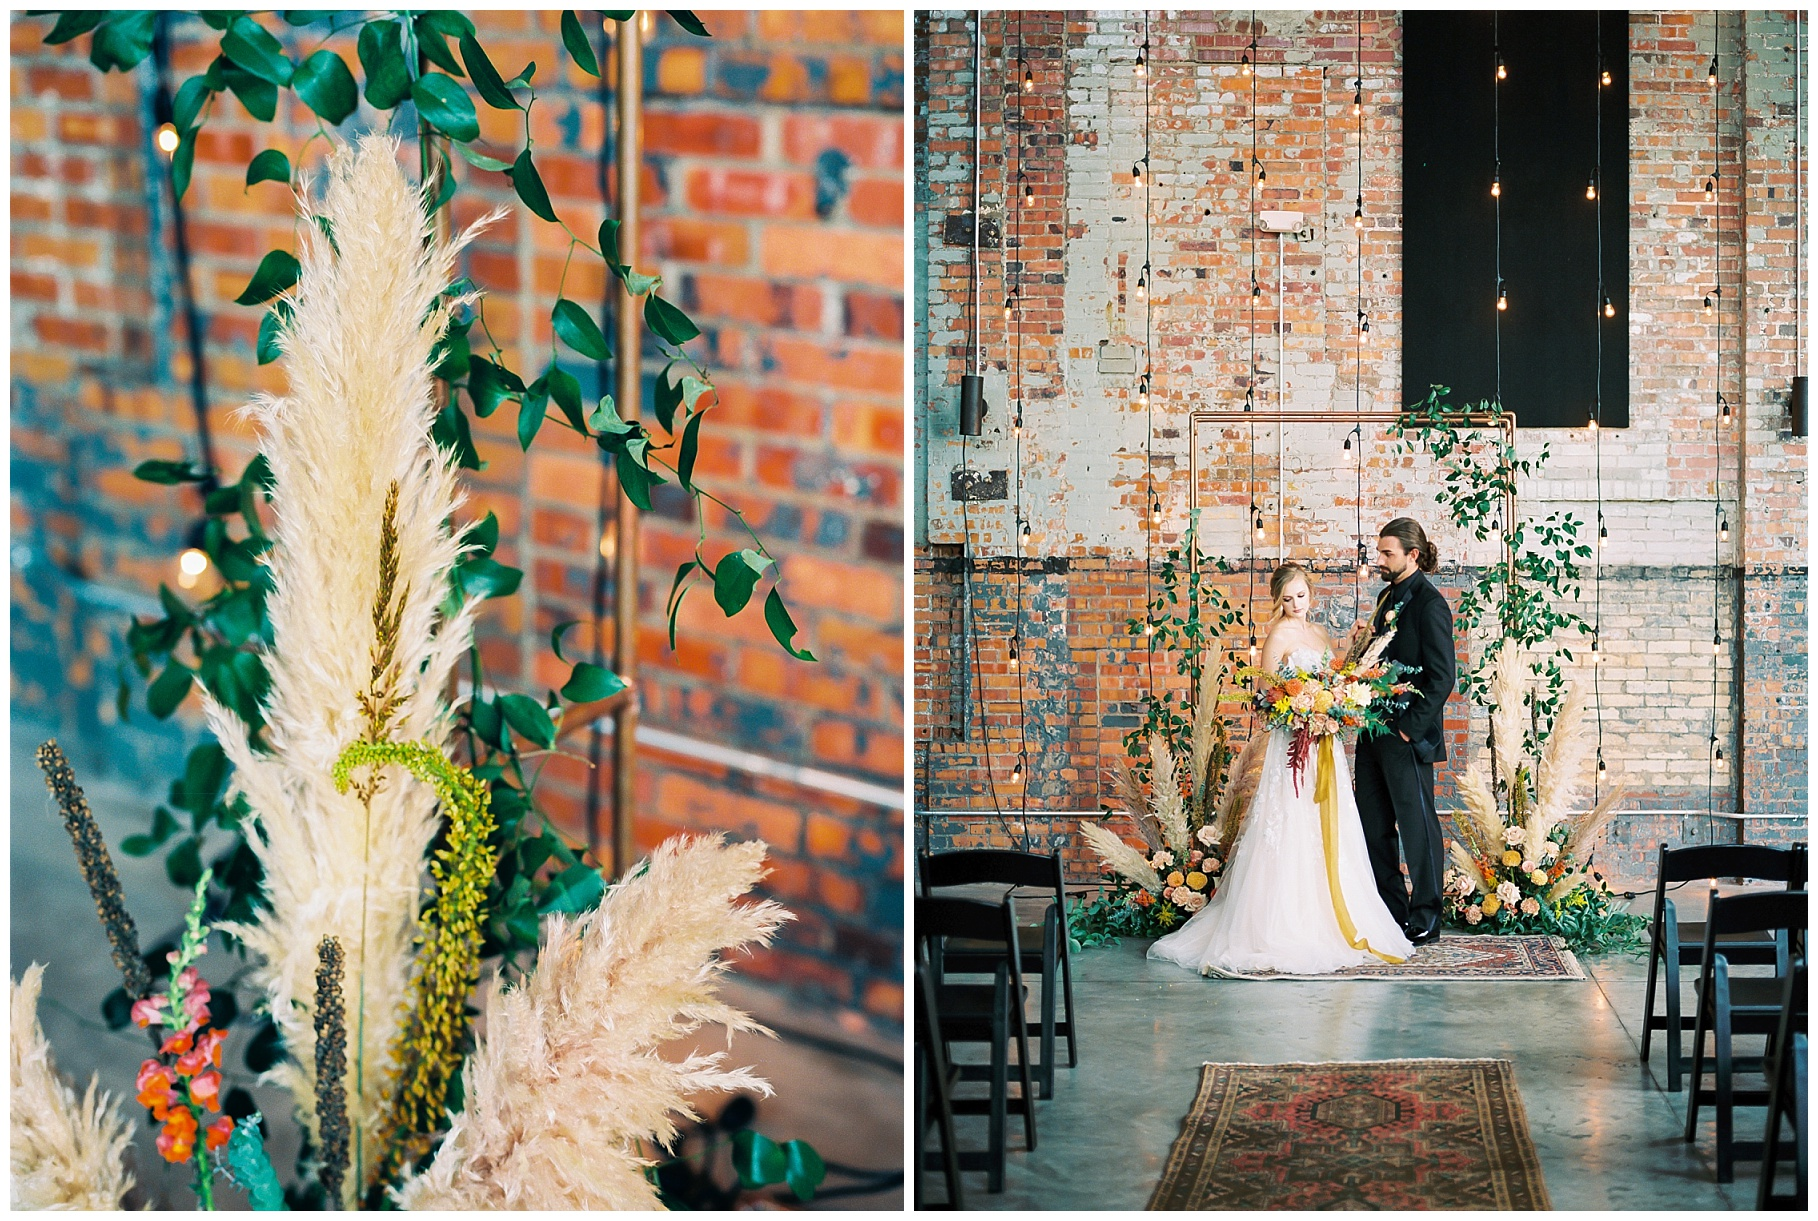 Urban Romance Wedding with Copper Accents at The Millbottom by Kelsi Kliethermes Photography Best Columbia Missouri Wedding Photographer_0034.jpg